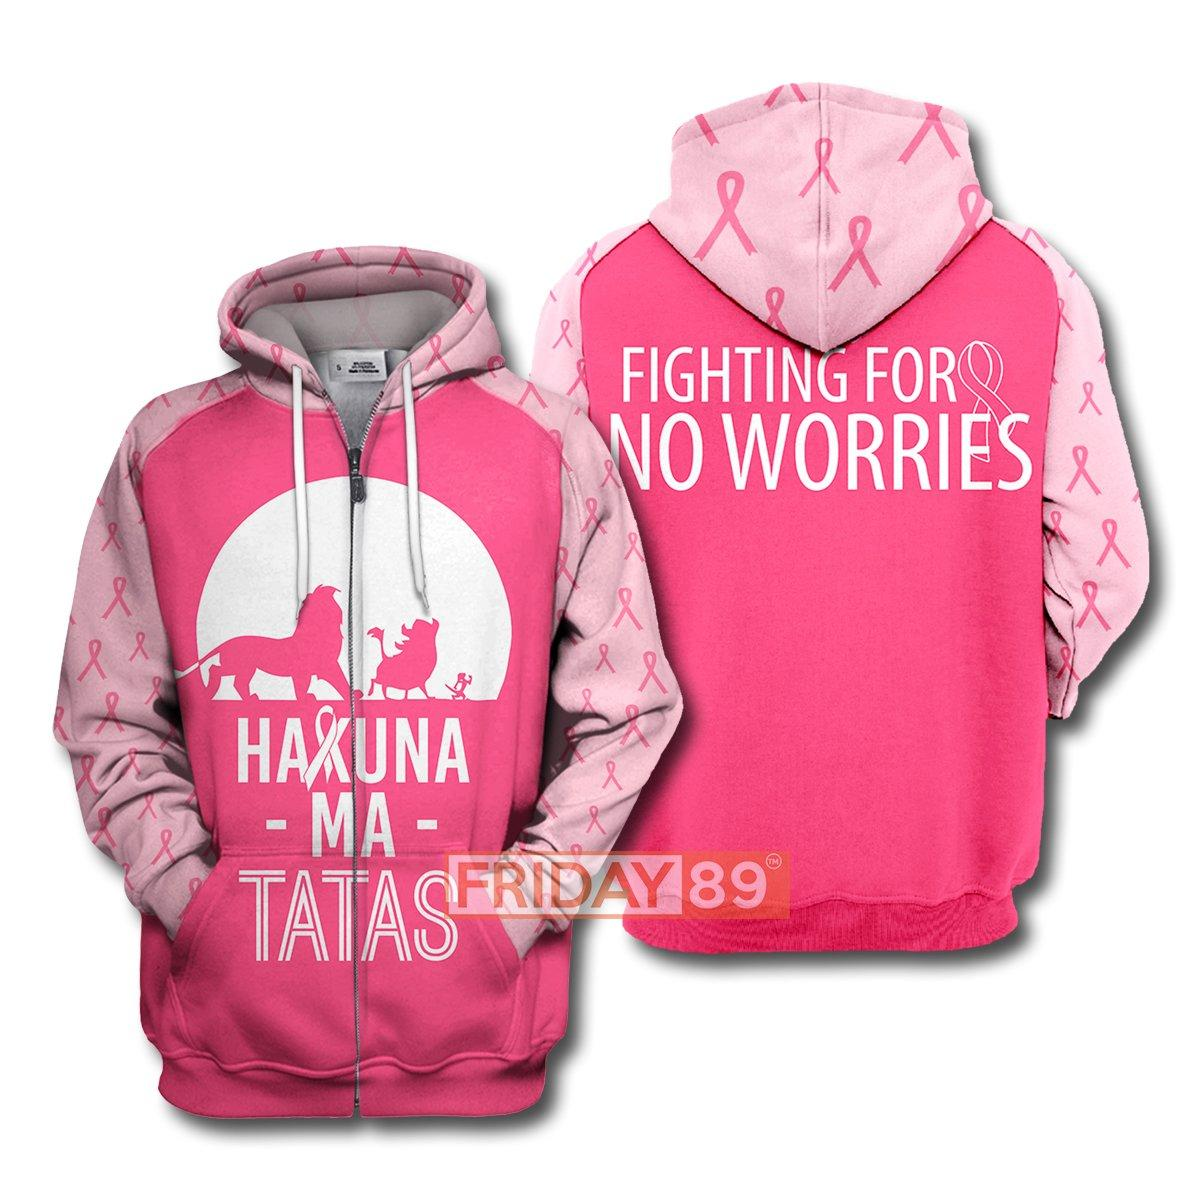 The lion king hakuna ma tatas breast cancer awareness 3d zip hoodie